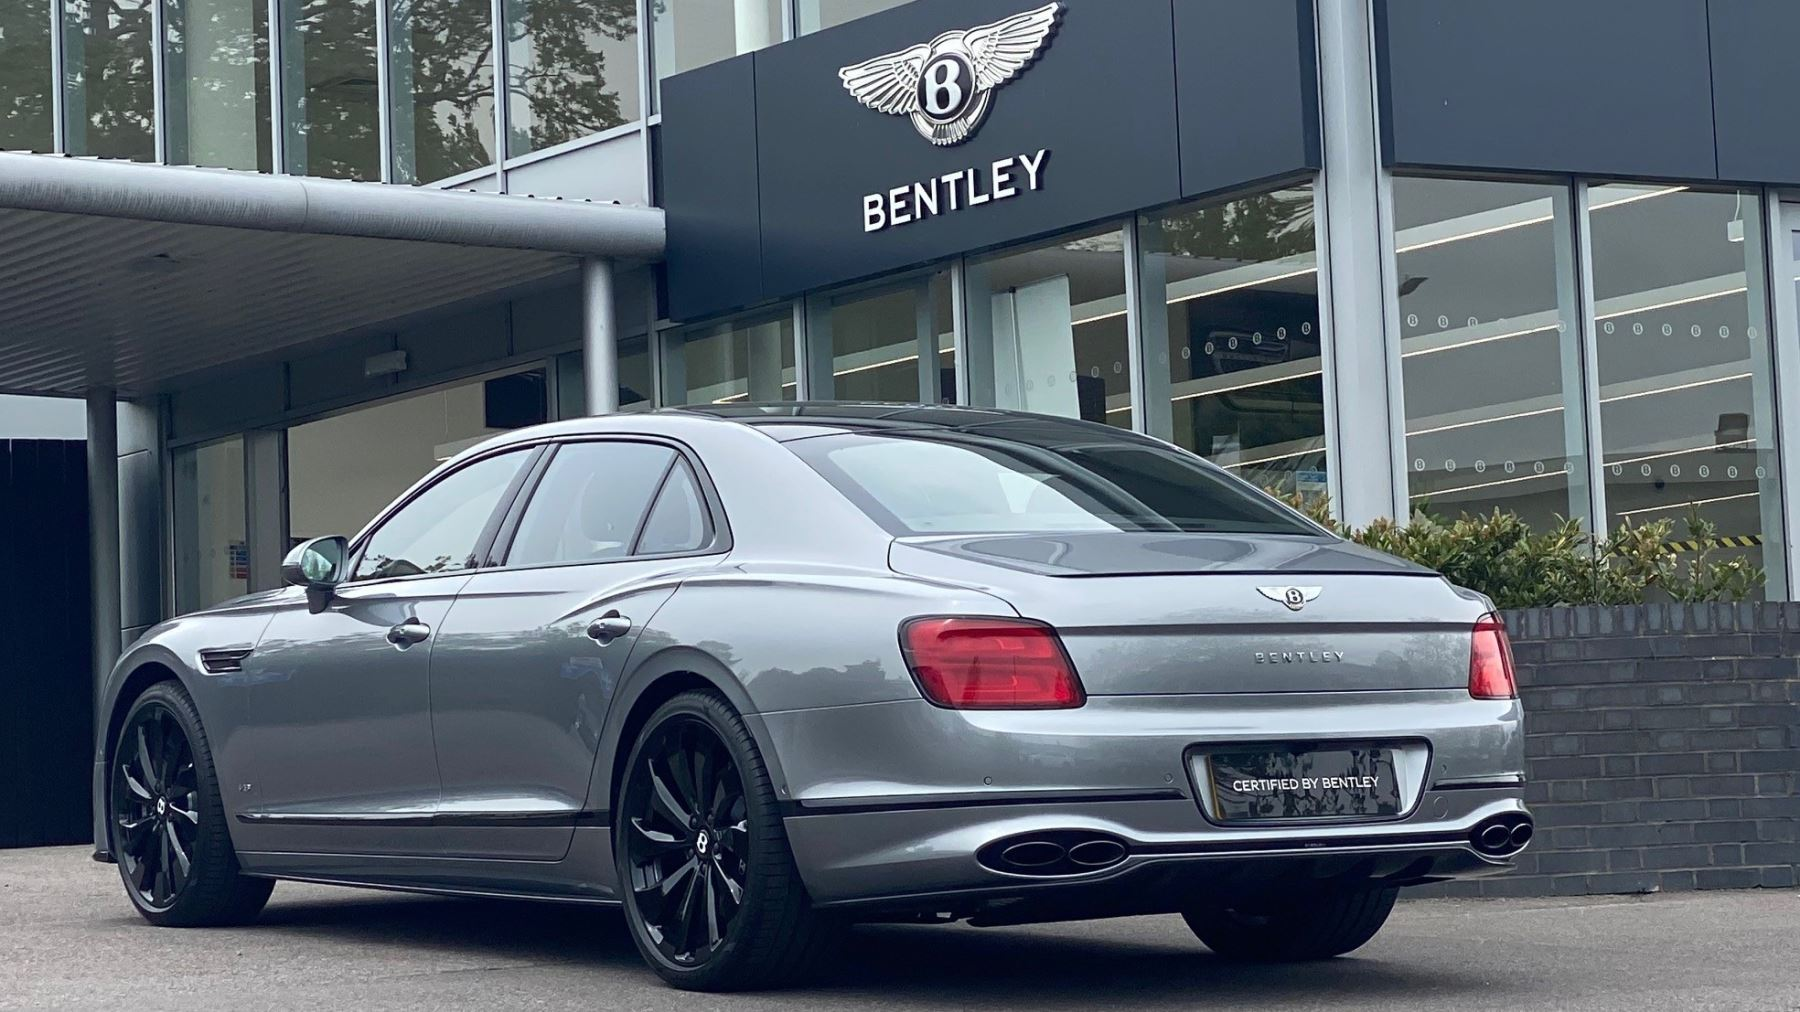 Bentley Flying Spur 4.0 V8 Mulliner Driving Spec 4dr Auto - Touring and City Specification image 5